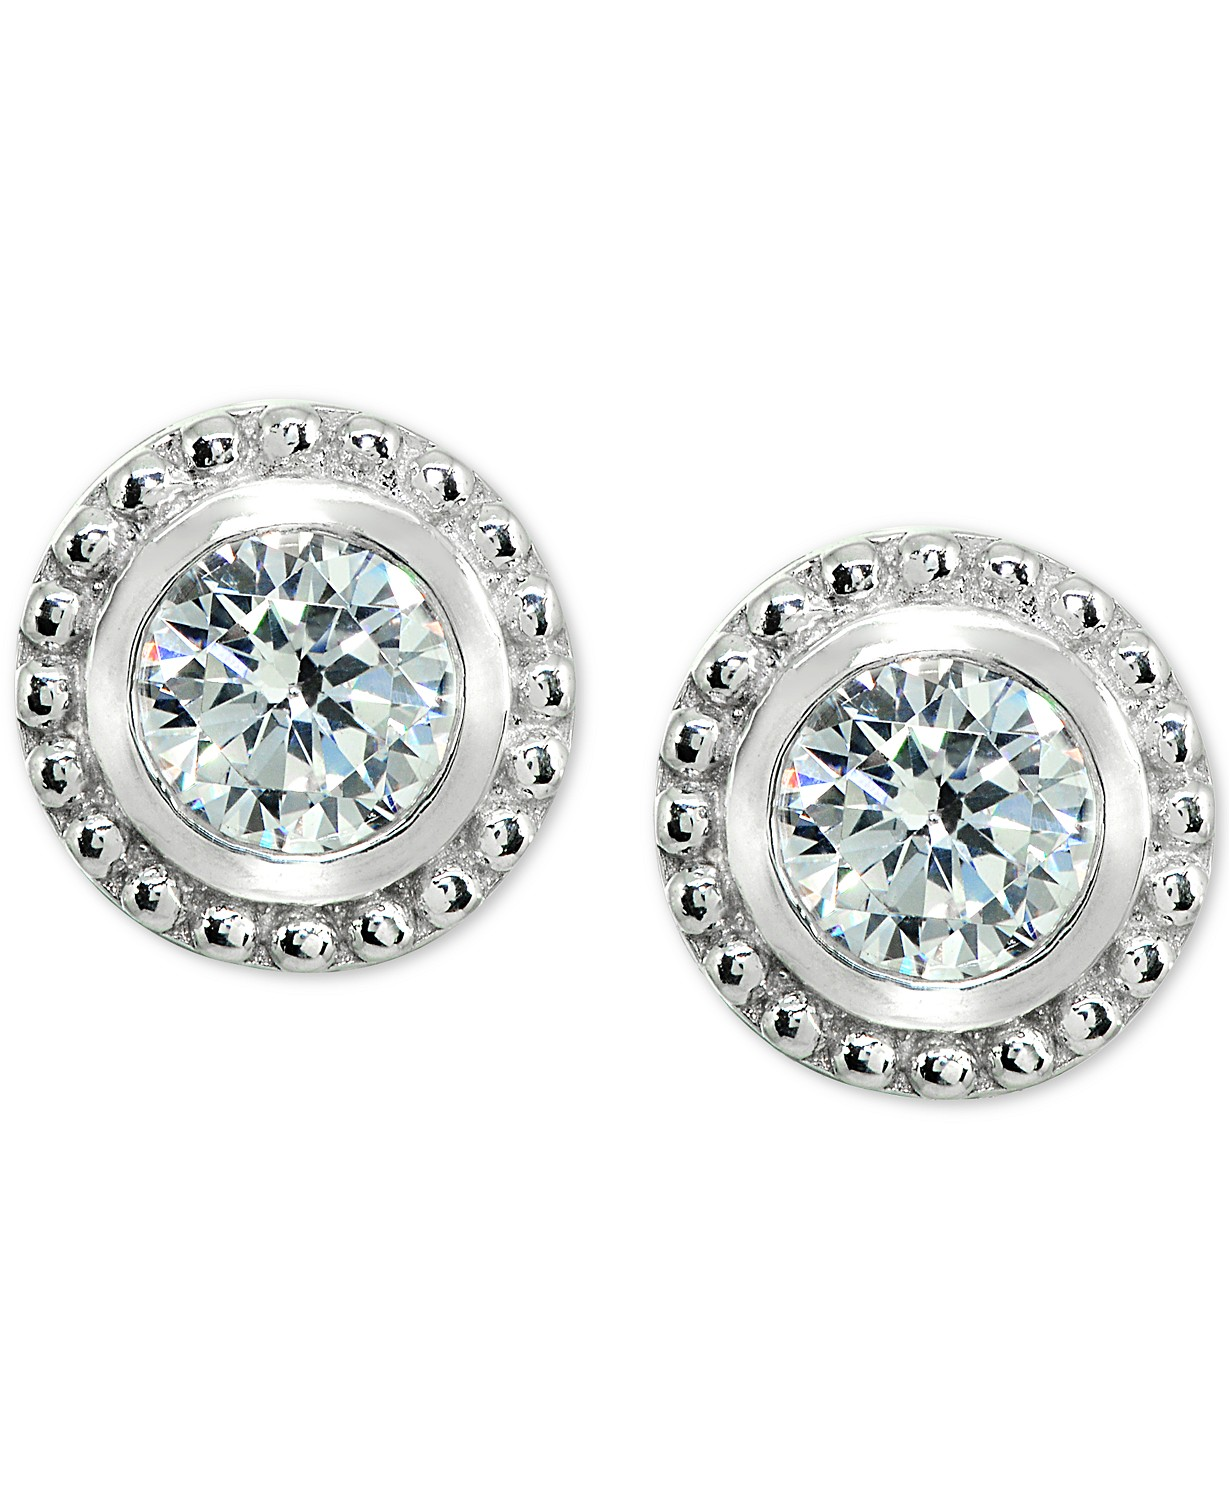 cb1d9a9ff Macys: Giani Bernini Cubic Zirconia Beaded Edge Stud Earrings for $18.96  (Was $80) + store pickup.